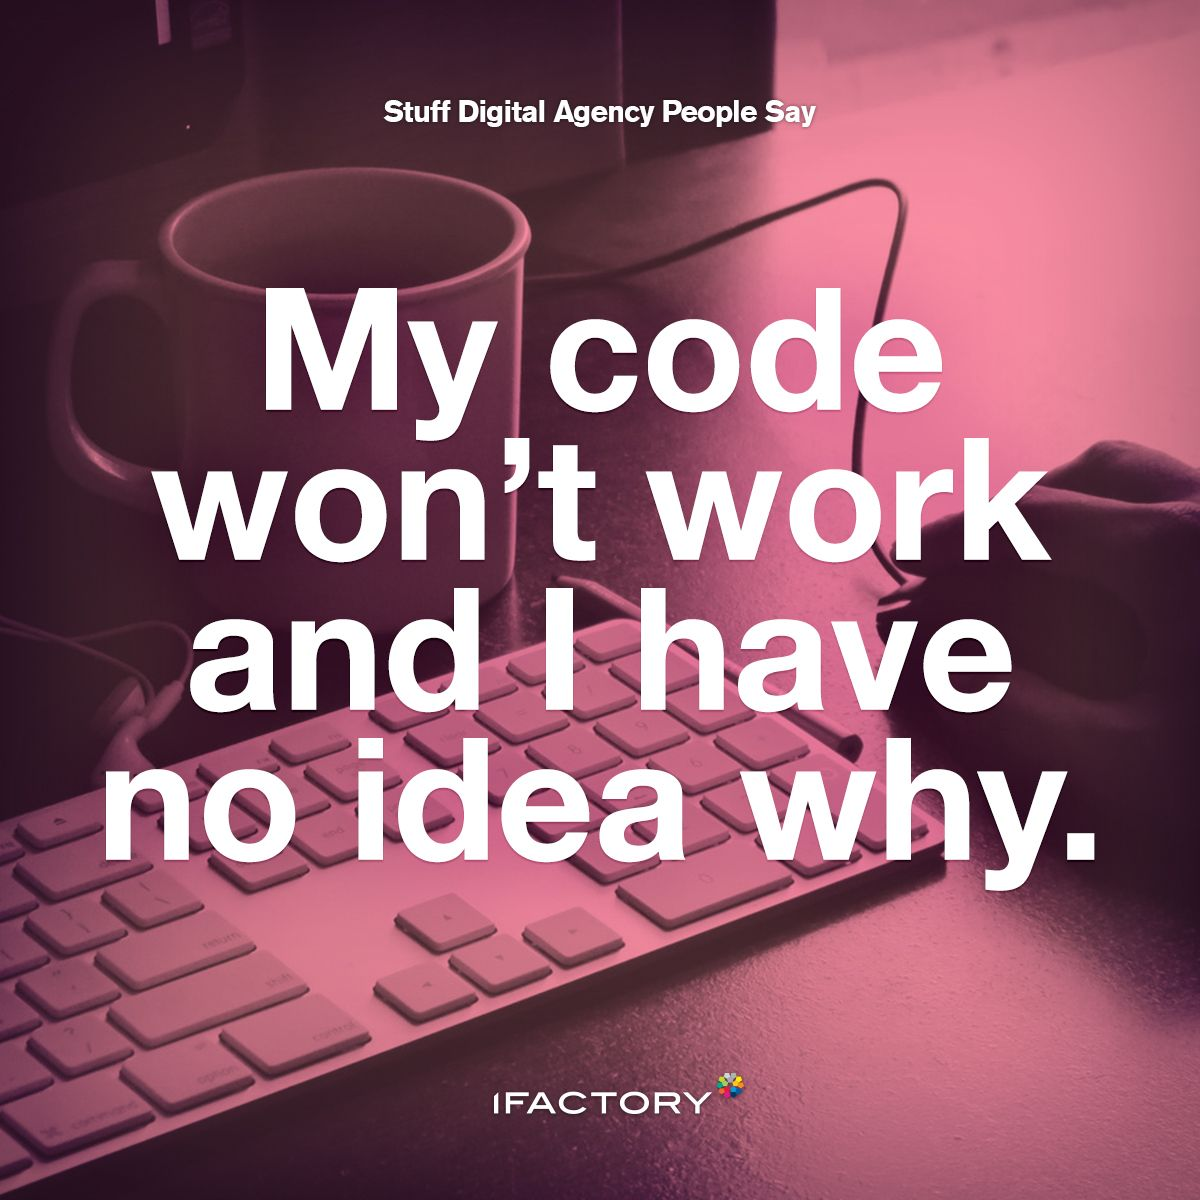 My code won't work and I have no idea why